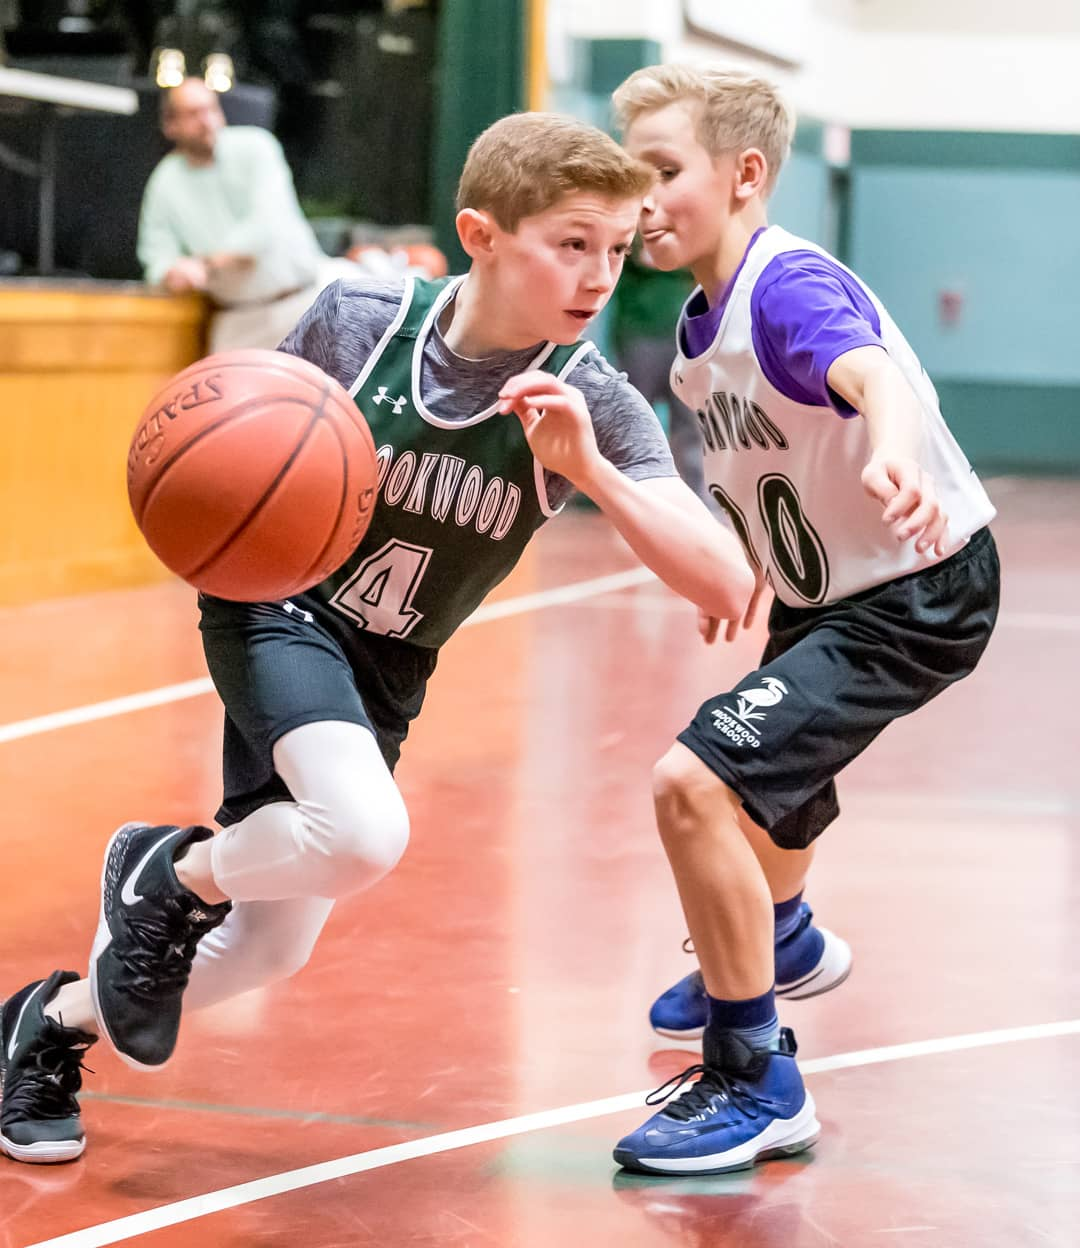 Student dribbles basketball during scrimmage